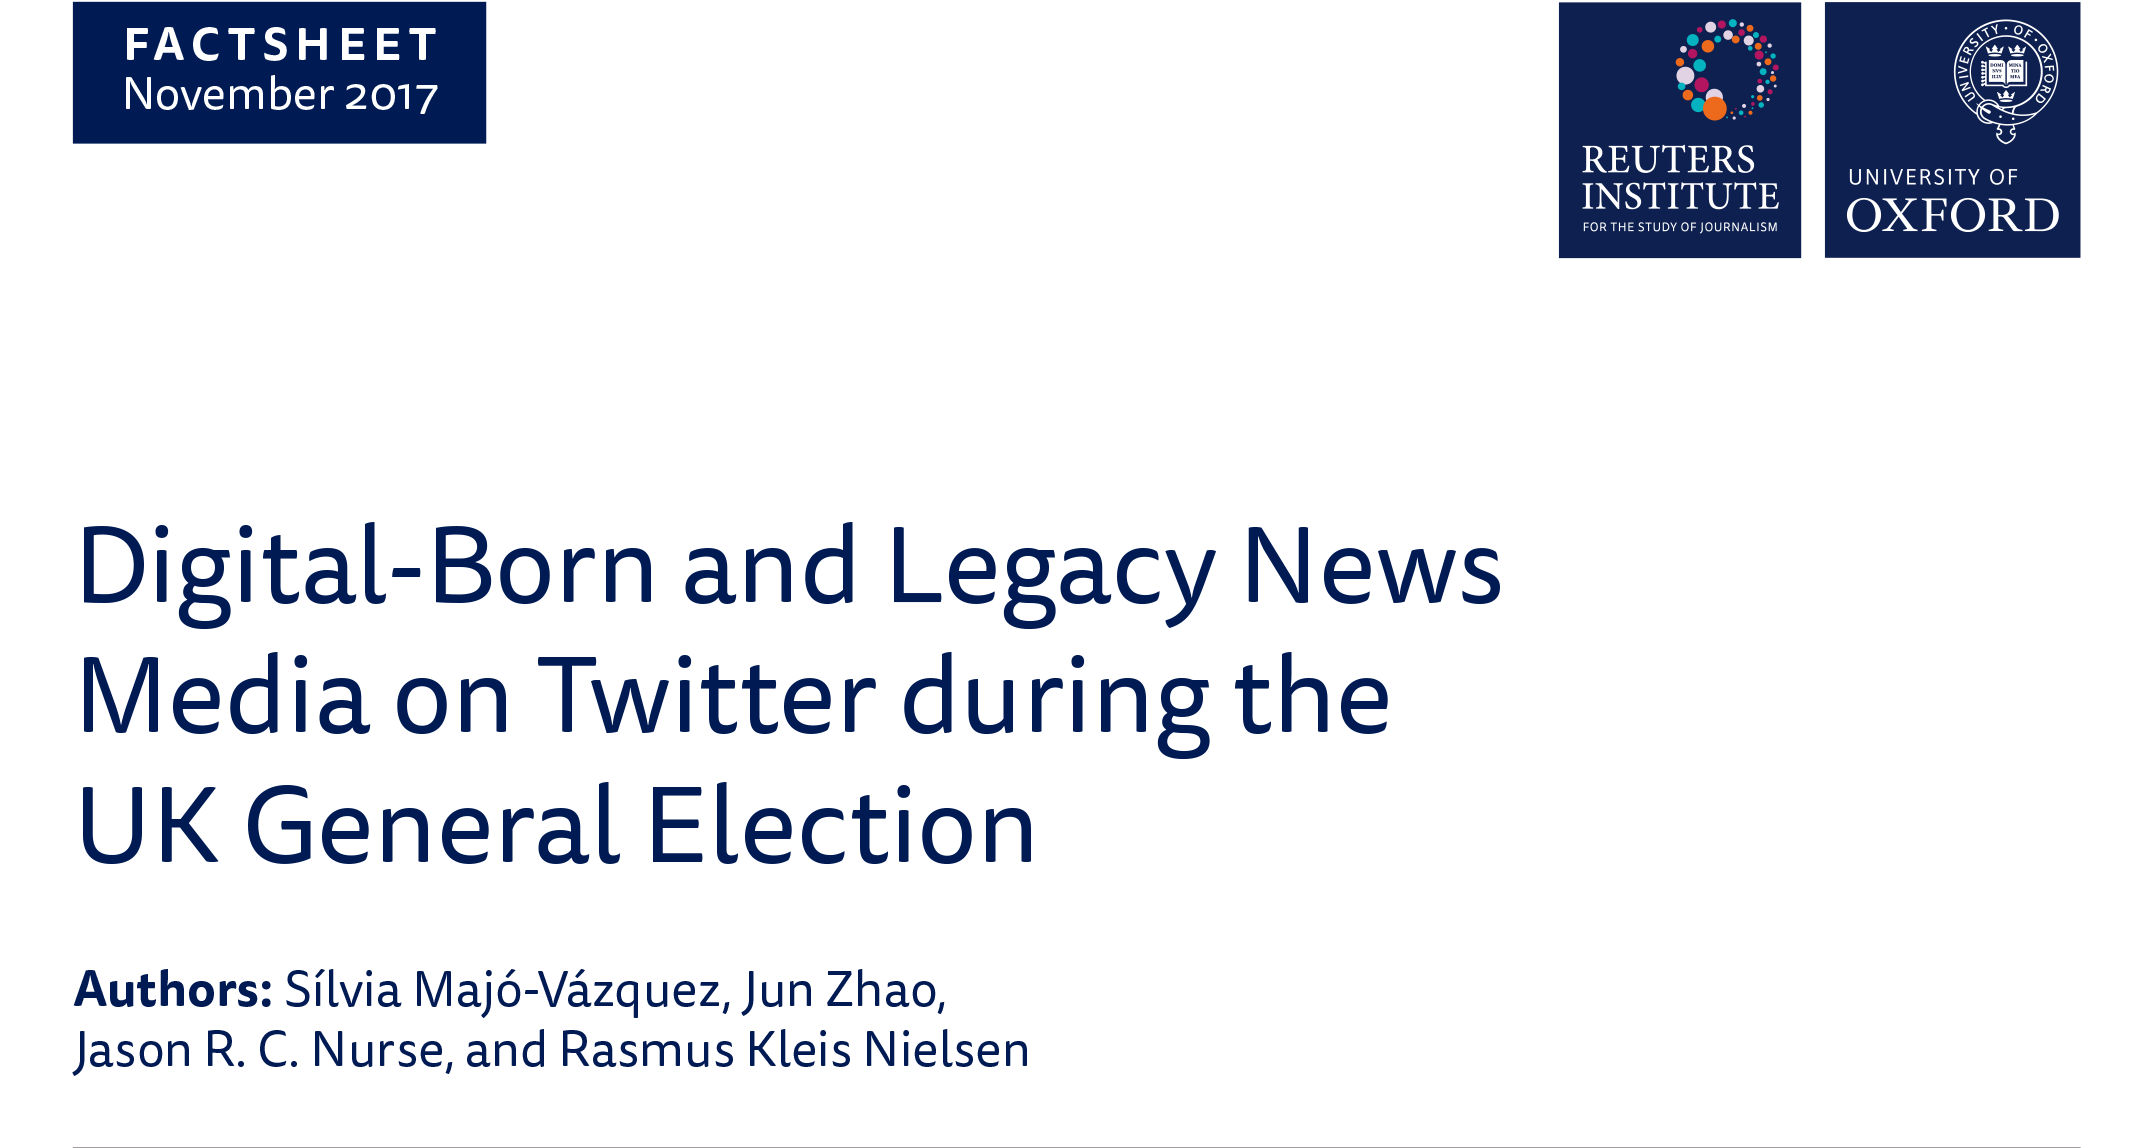 Digital-Born and Legacy News Media on Twitter during the UK General  Election   Reuters Institute for the Study of Journalism